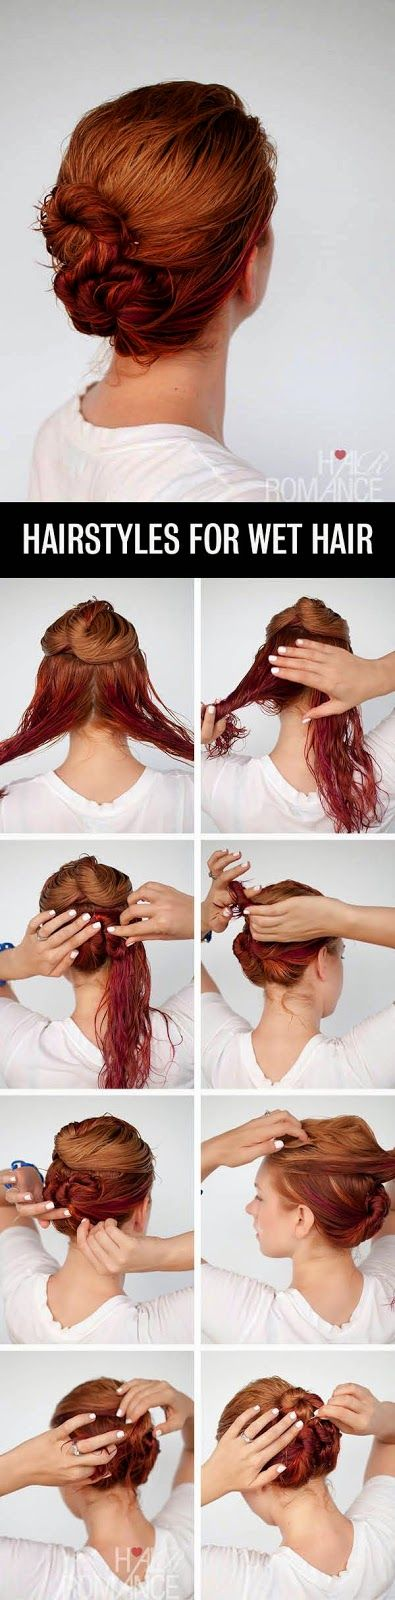 Fashion Pics Blog: Get Ready Fast With 7 Easy Hairstyle Tutorials For Wet Hair